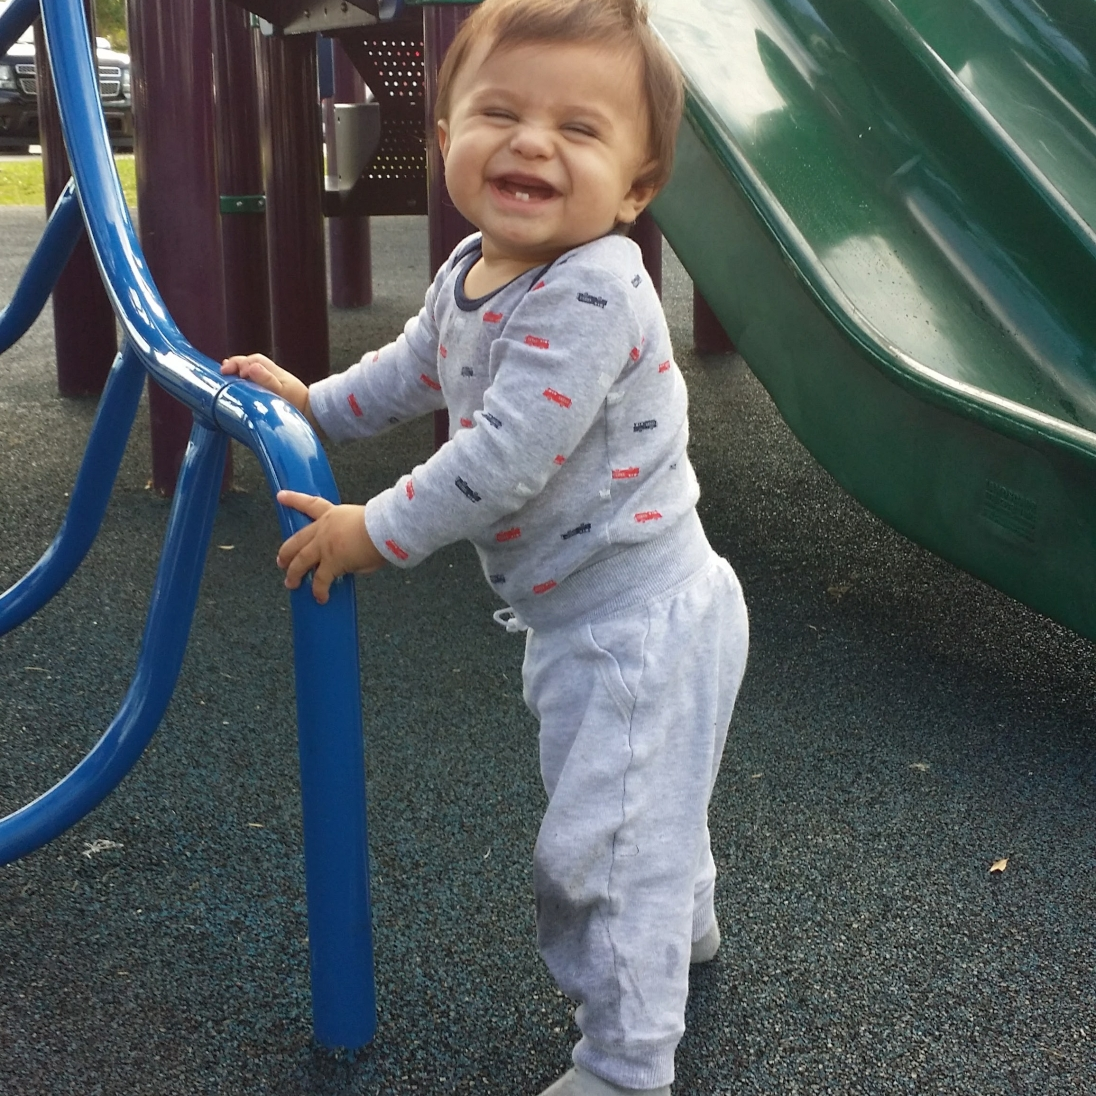 He loved the playground.